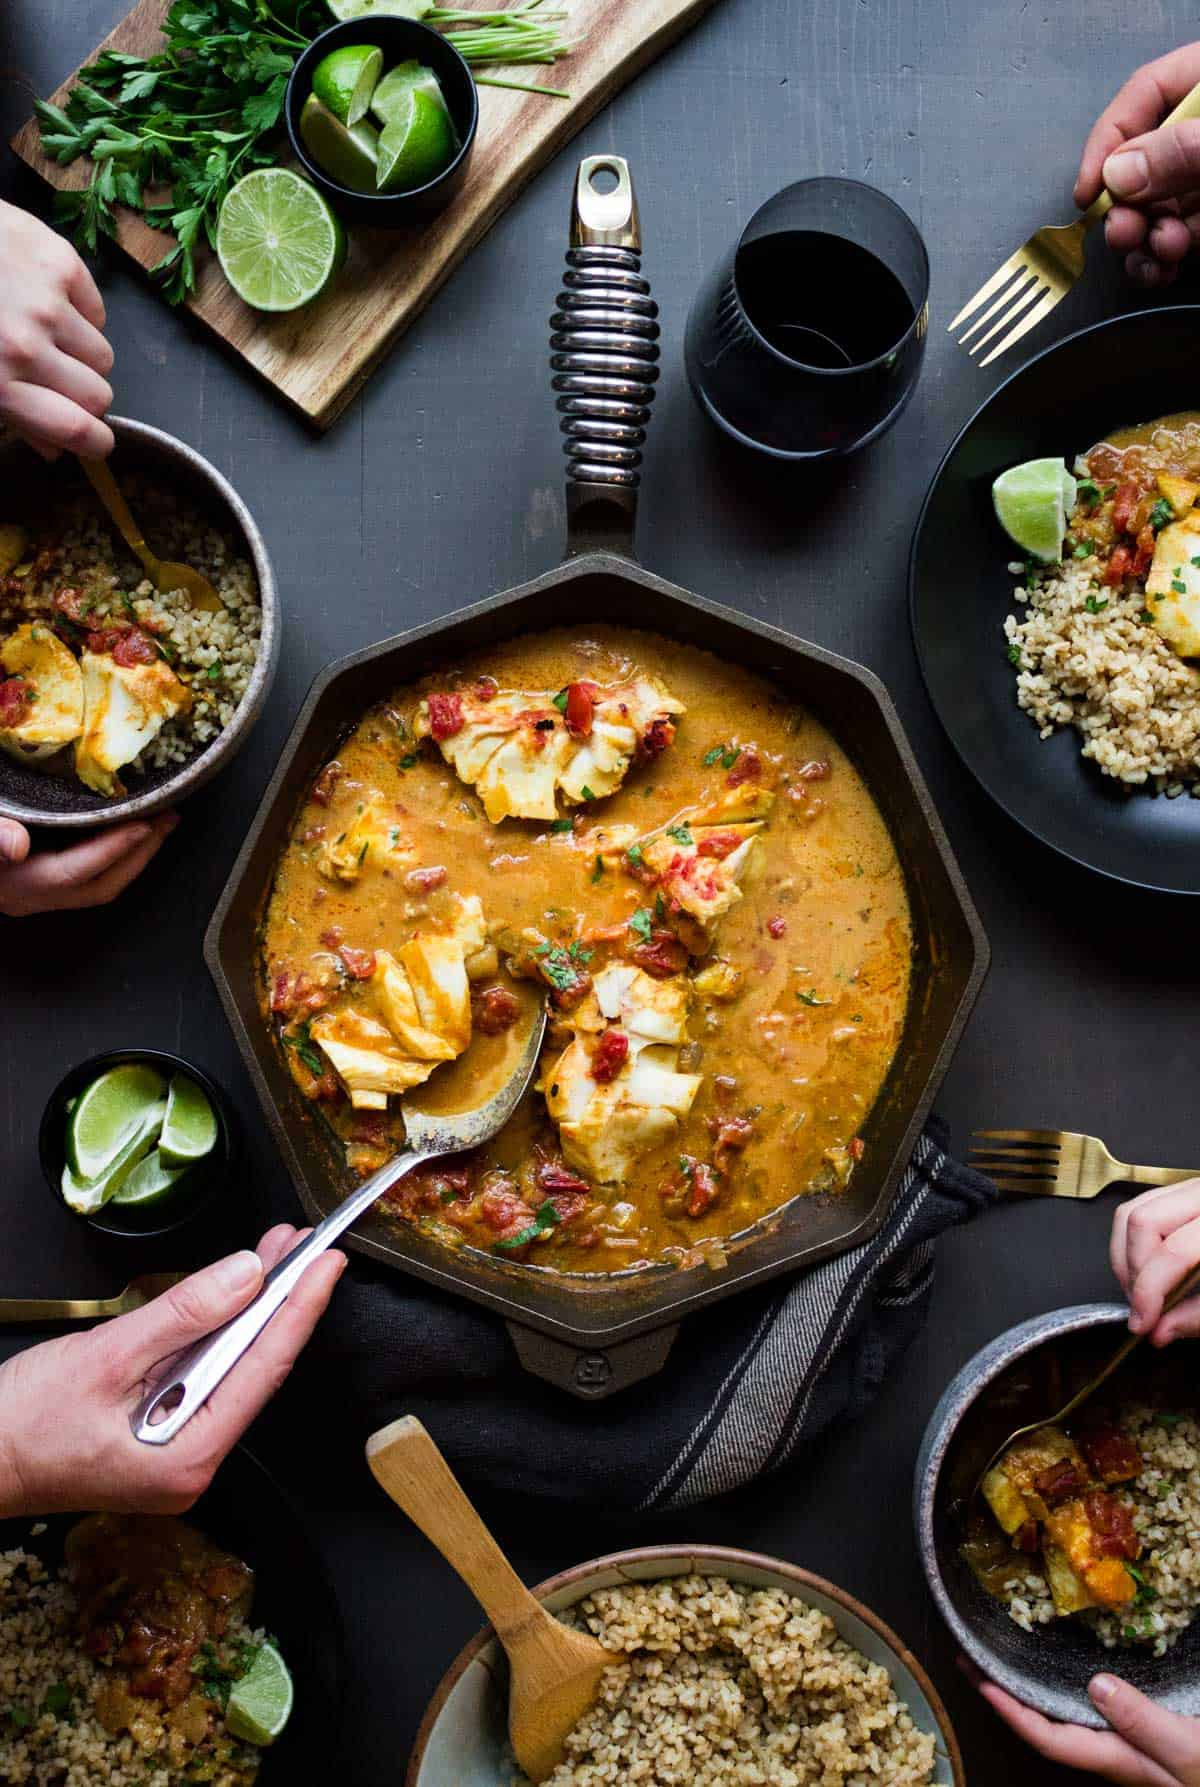 A family gathering around a table with 4 bowls and cast iron skillet of coconut tomato curry with cod and brown rice.